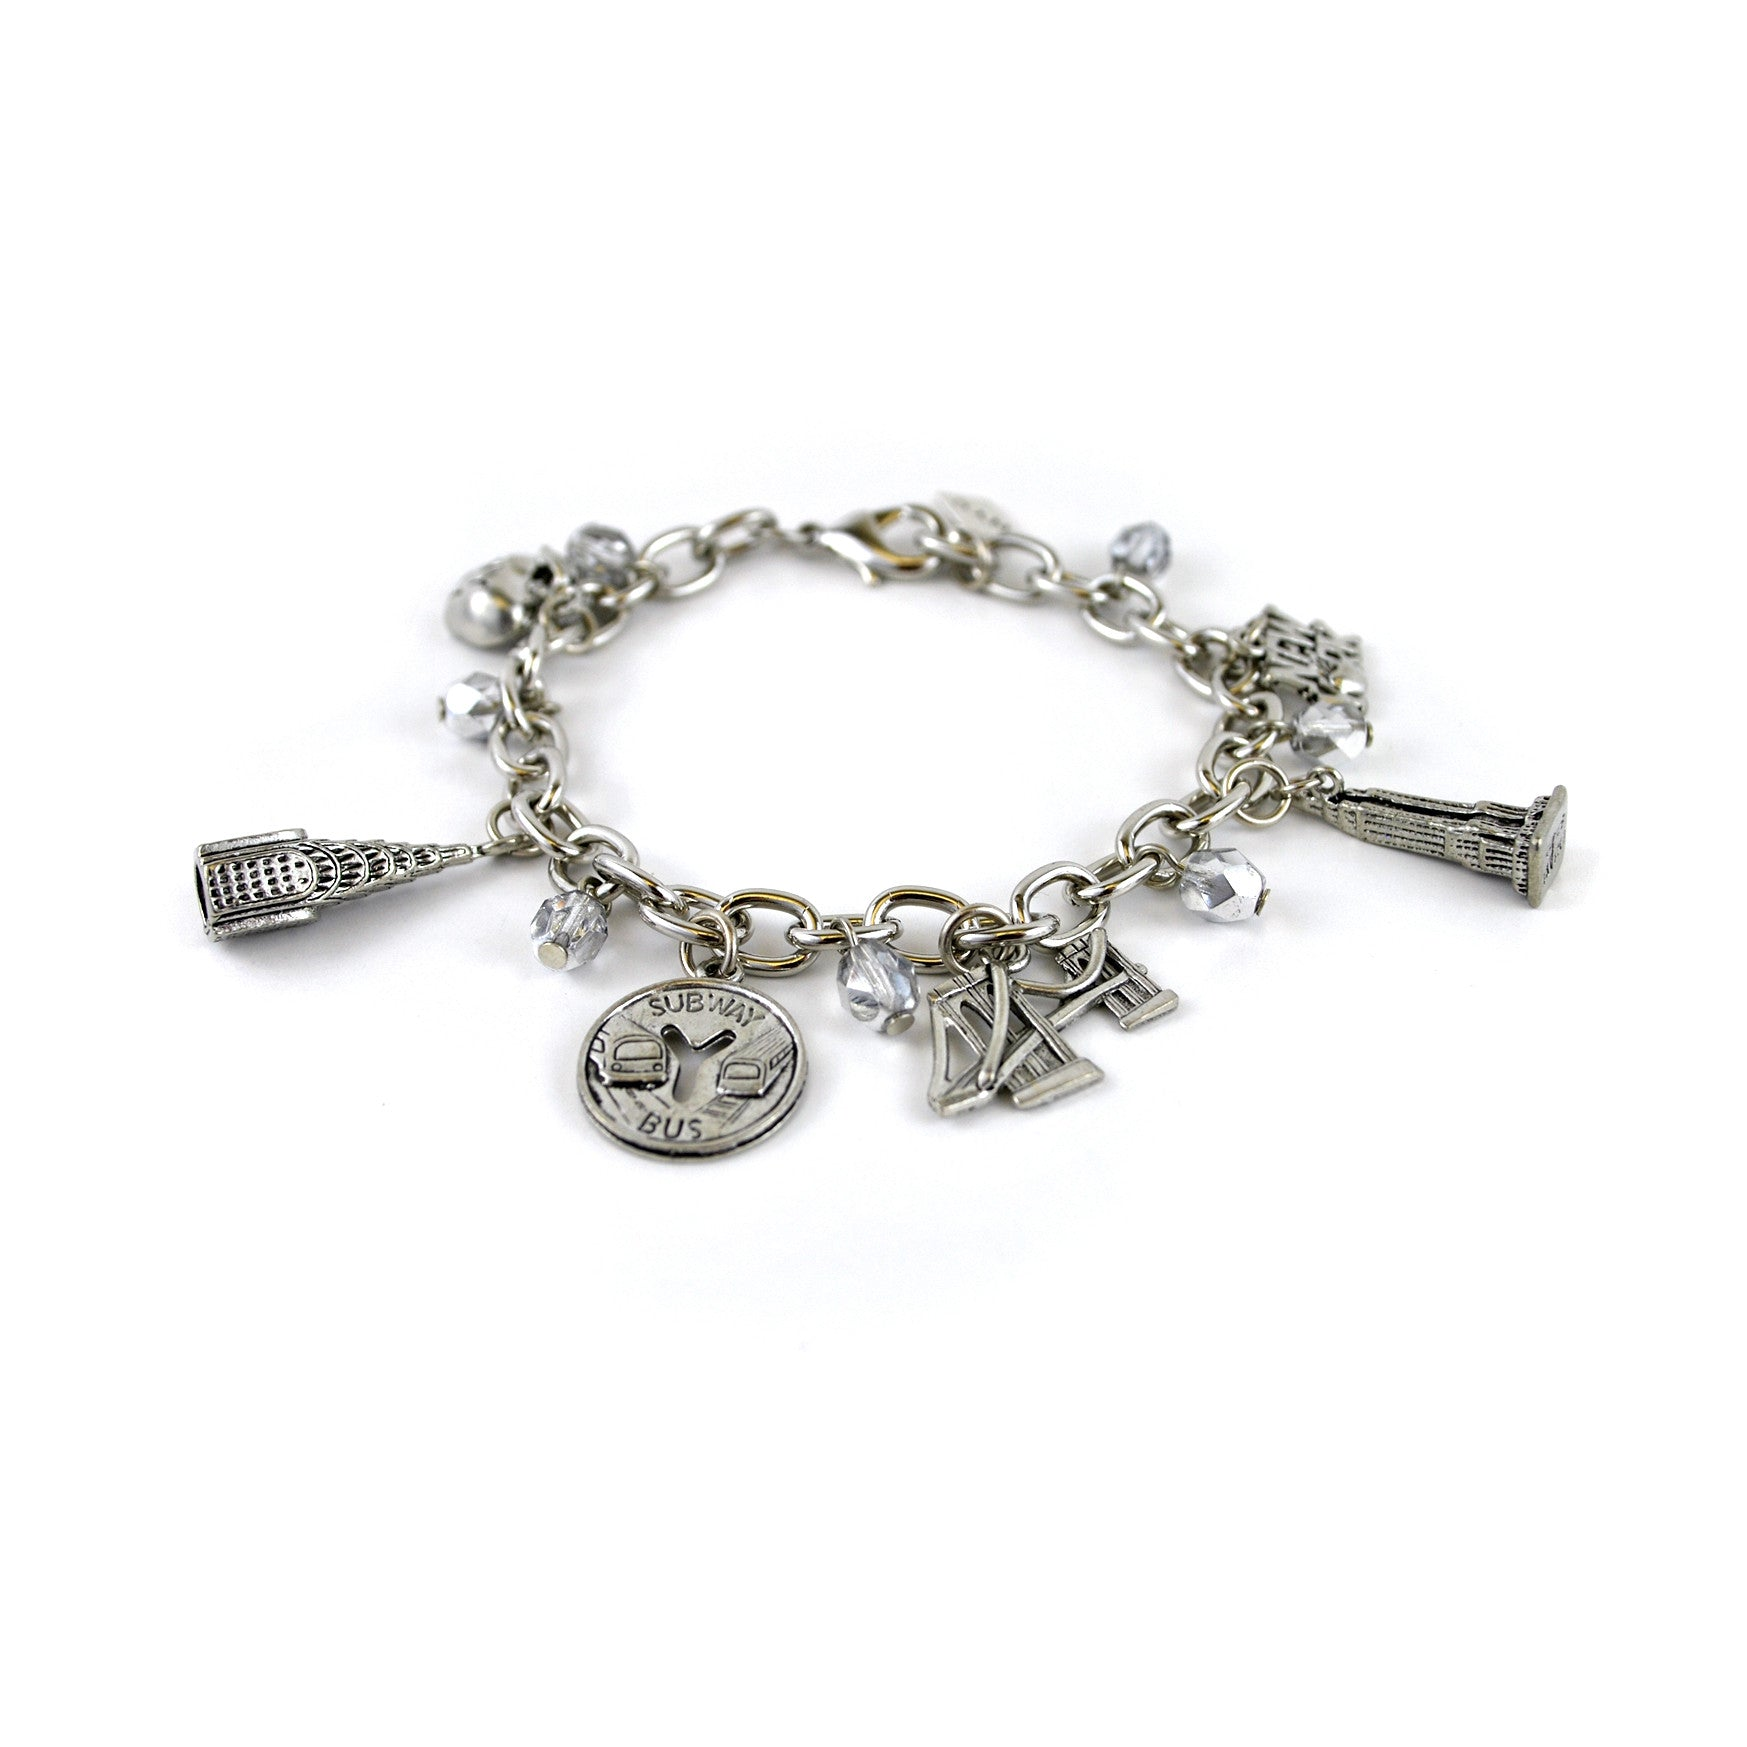 Nyc Charm Bracelet  The New York Public Library Shop